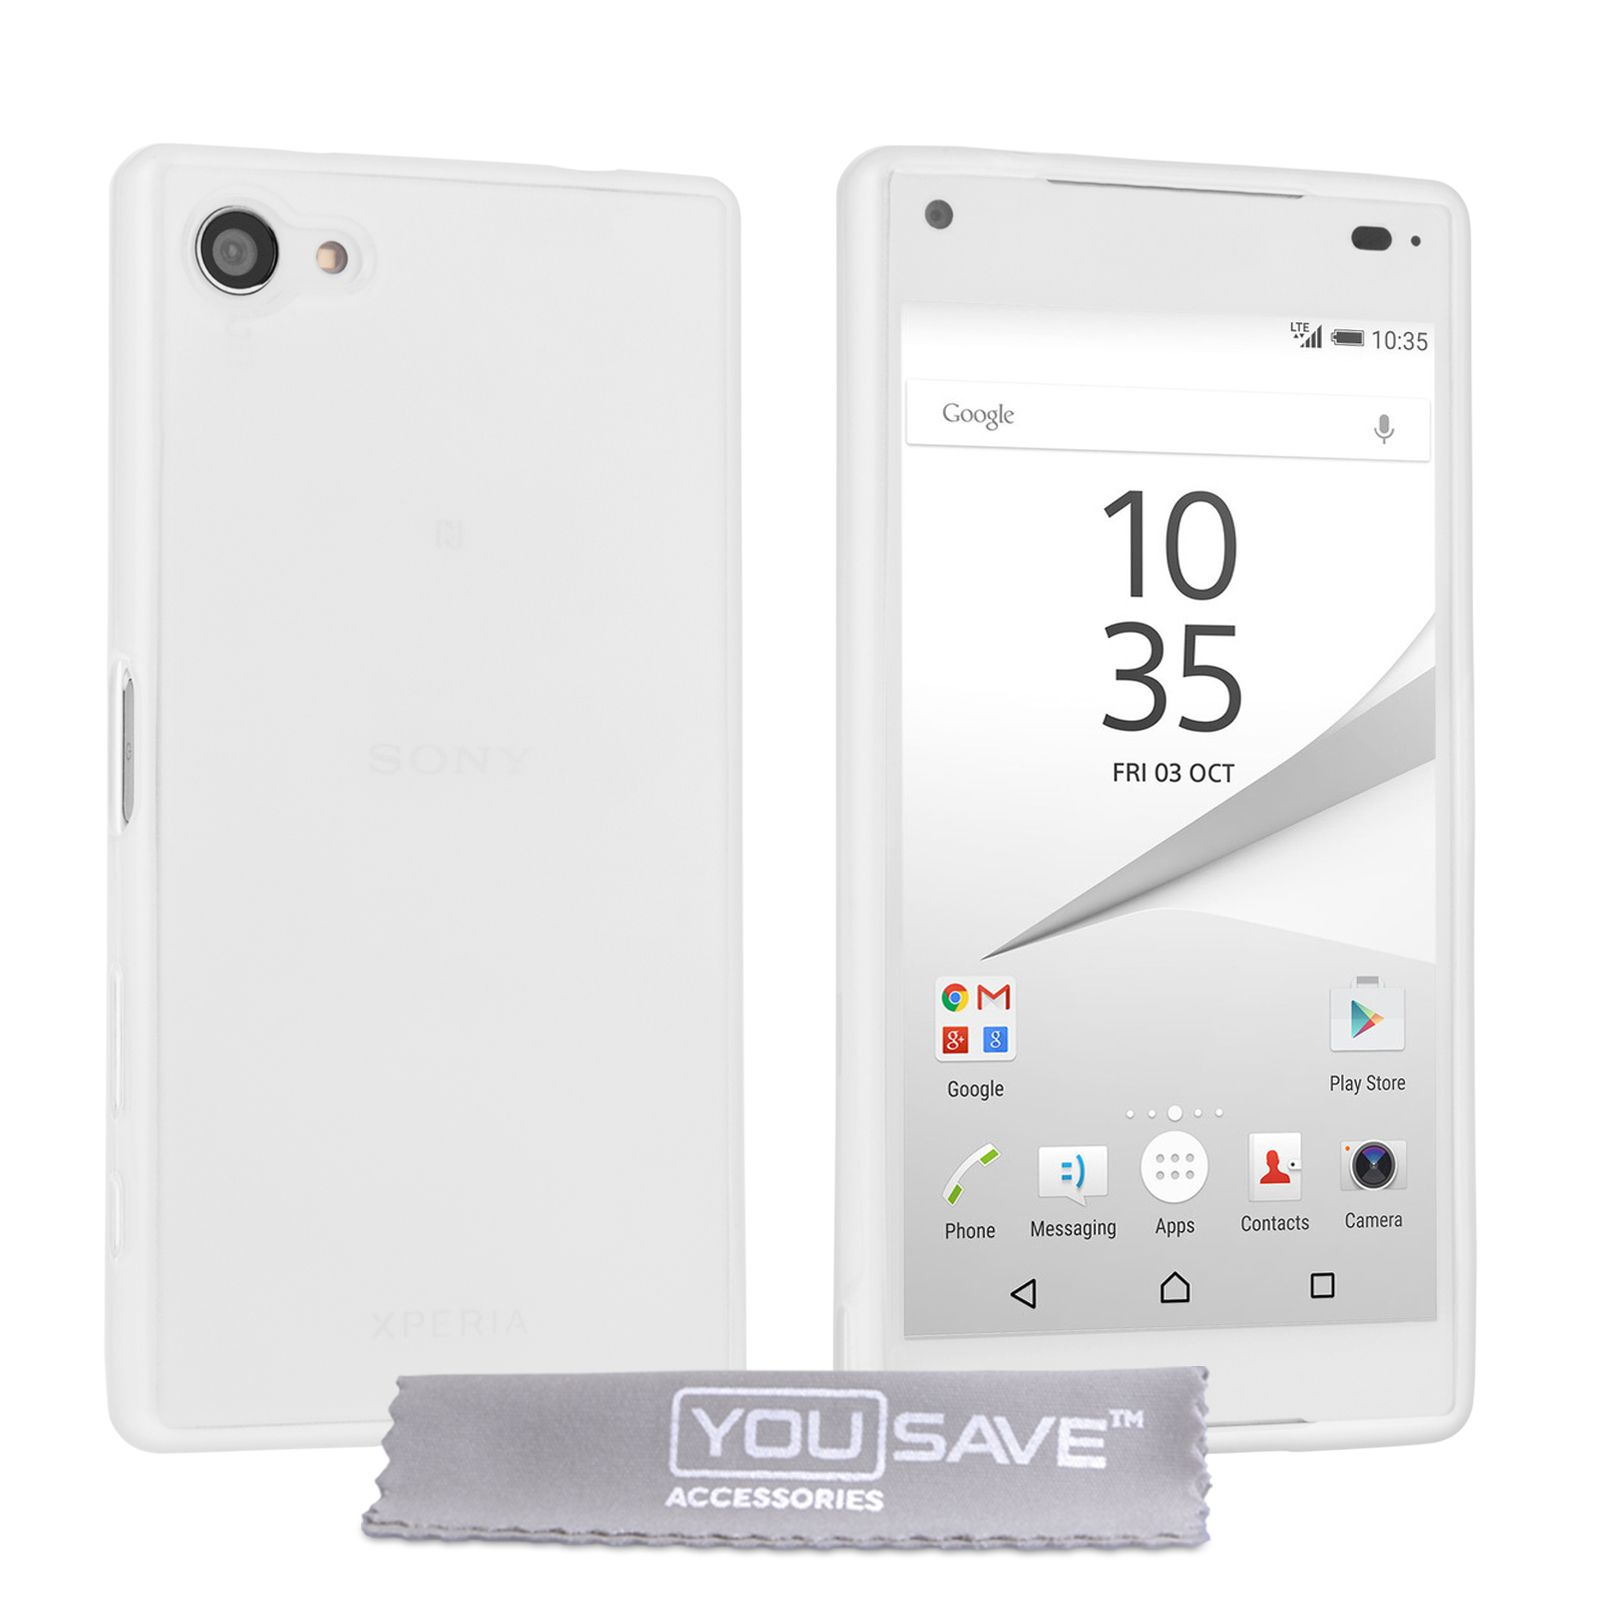 Yousave accessories sony xperia z5 compact 06mm ultra thin clear yousave accessories sony xperia z5 compact 06mm ultra thin clear gel case mobile ccuart Gallery